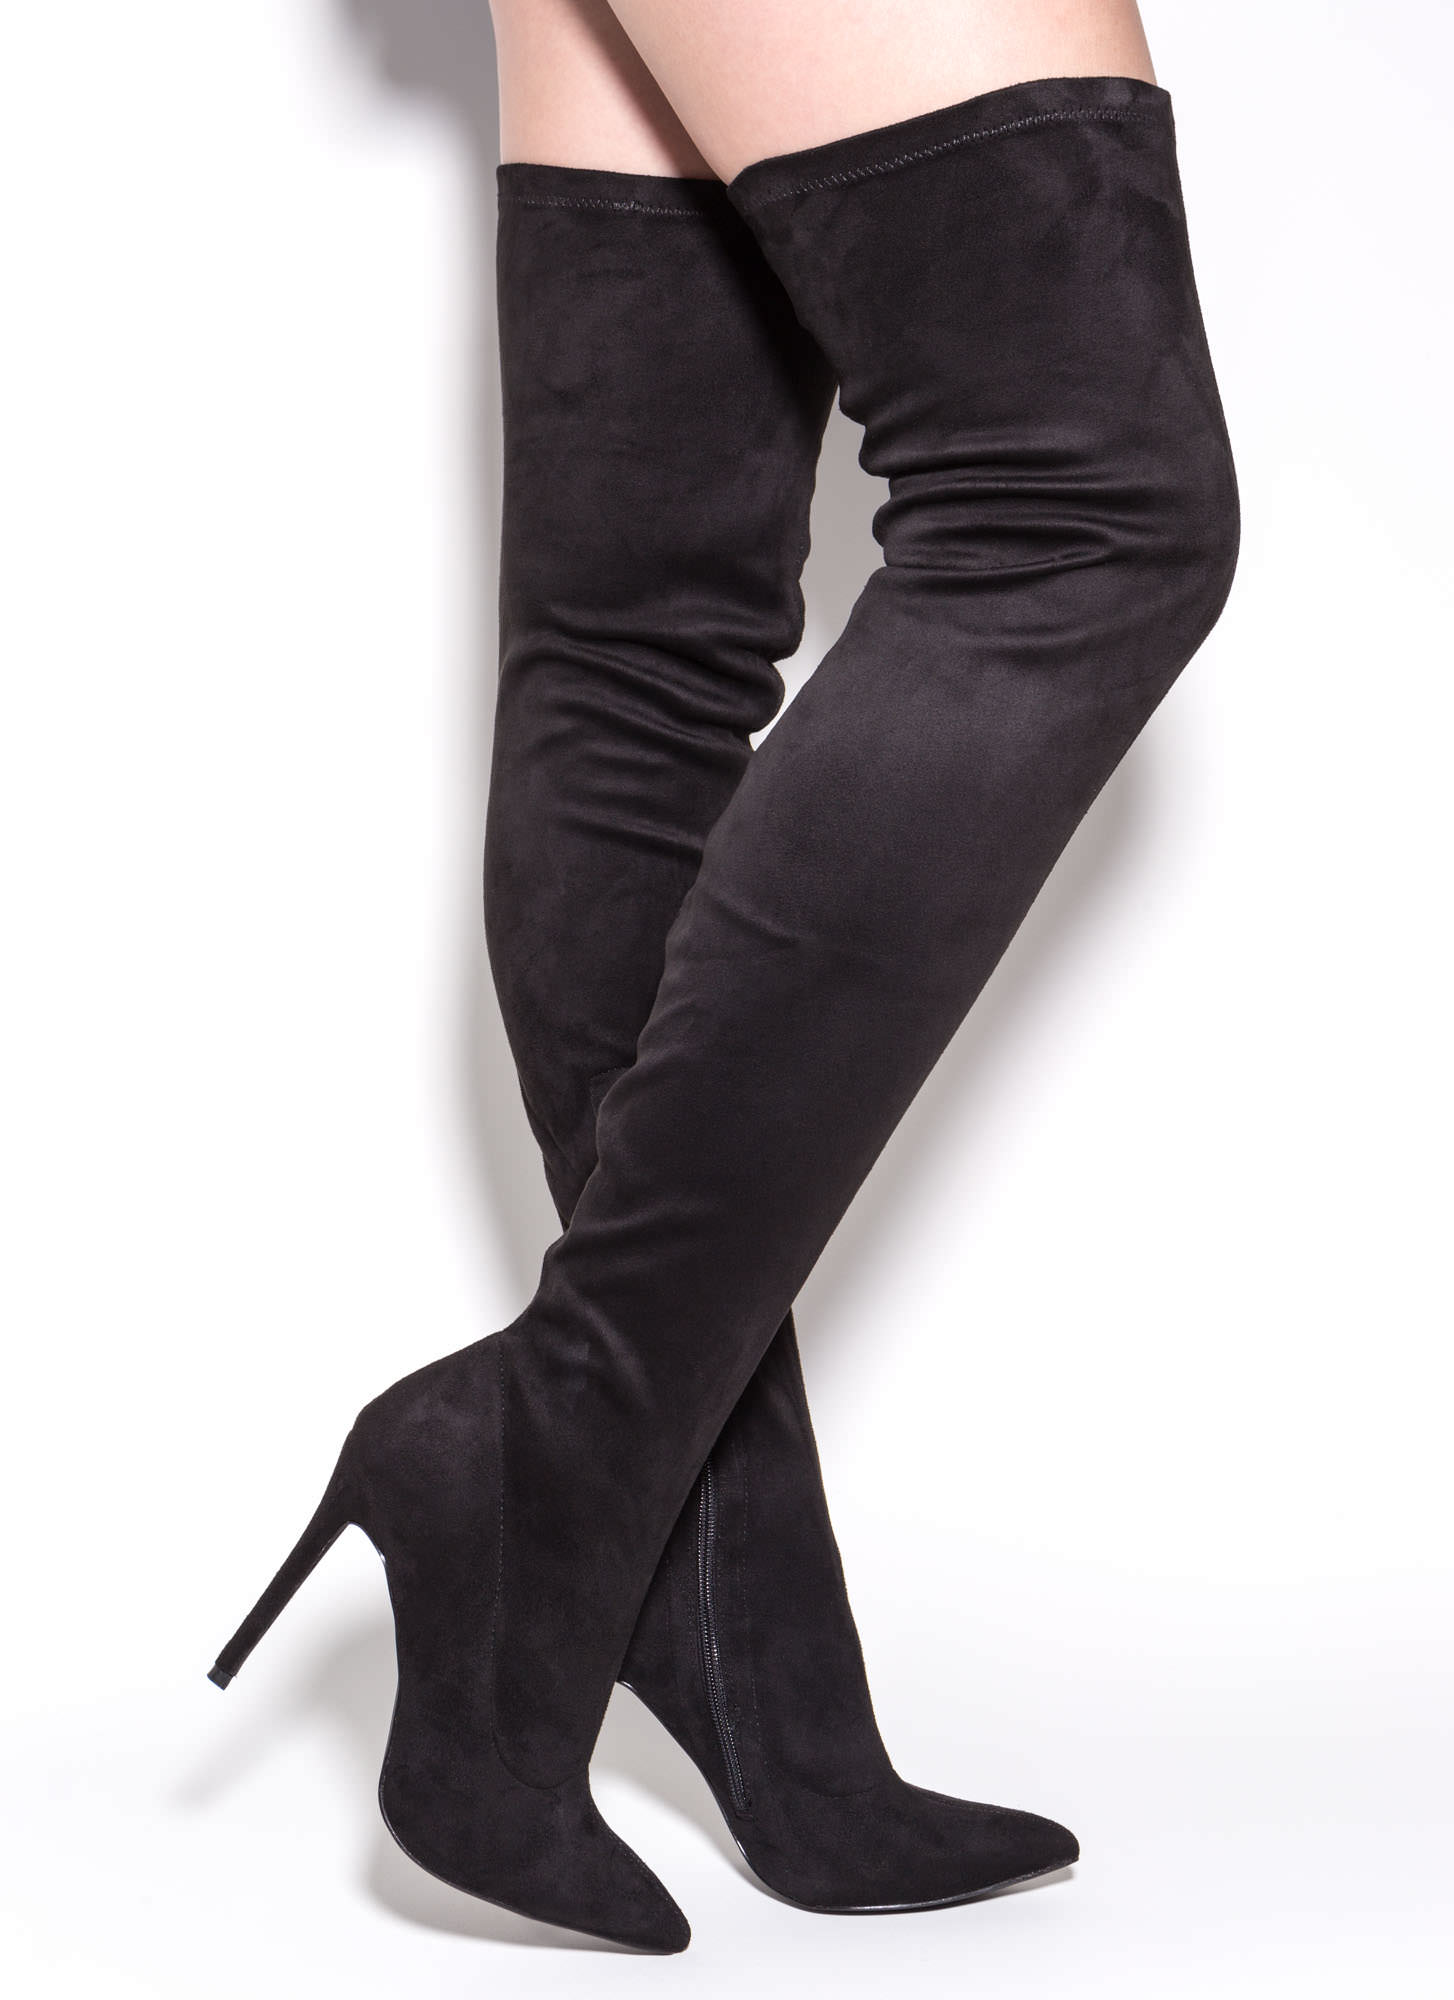 Story Chic Thigh-High Boots BLACK GREY MAROON OLIVE - GoJane.com